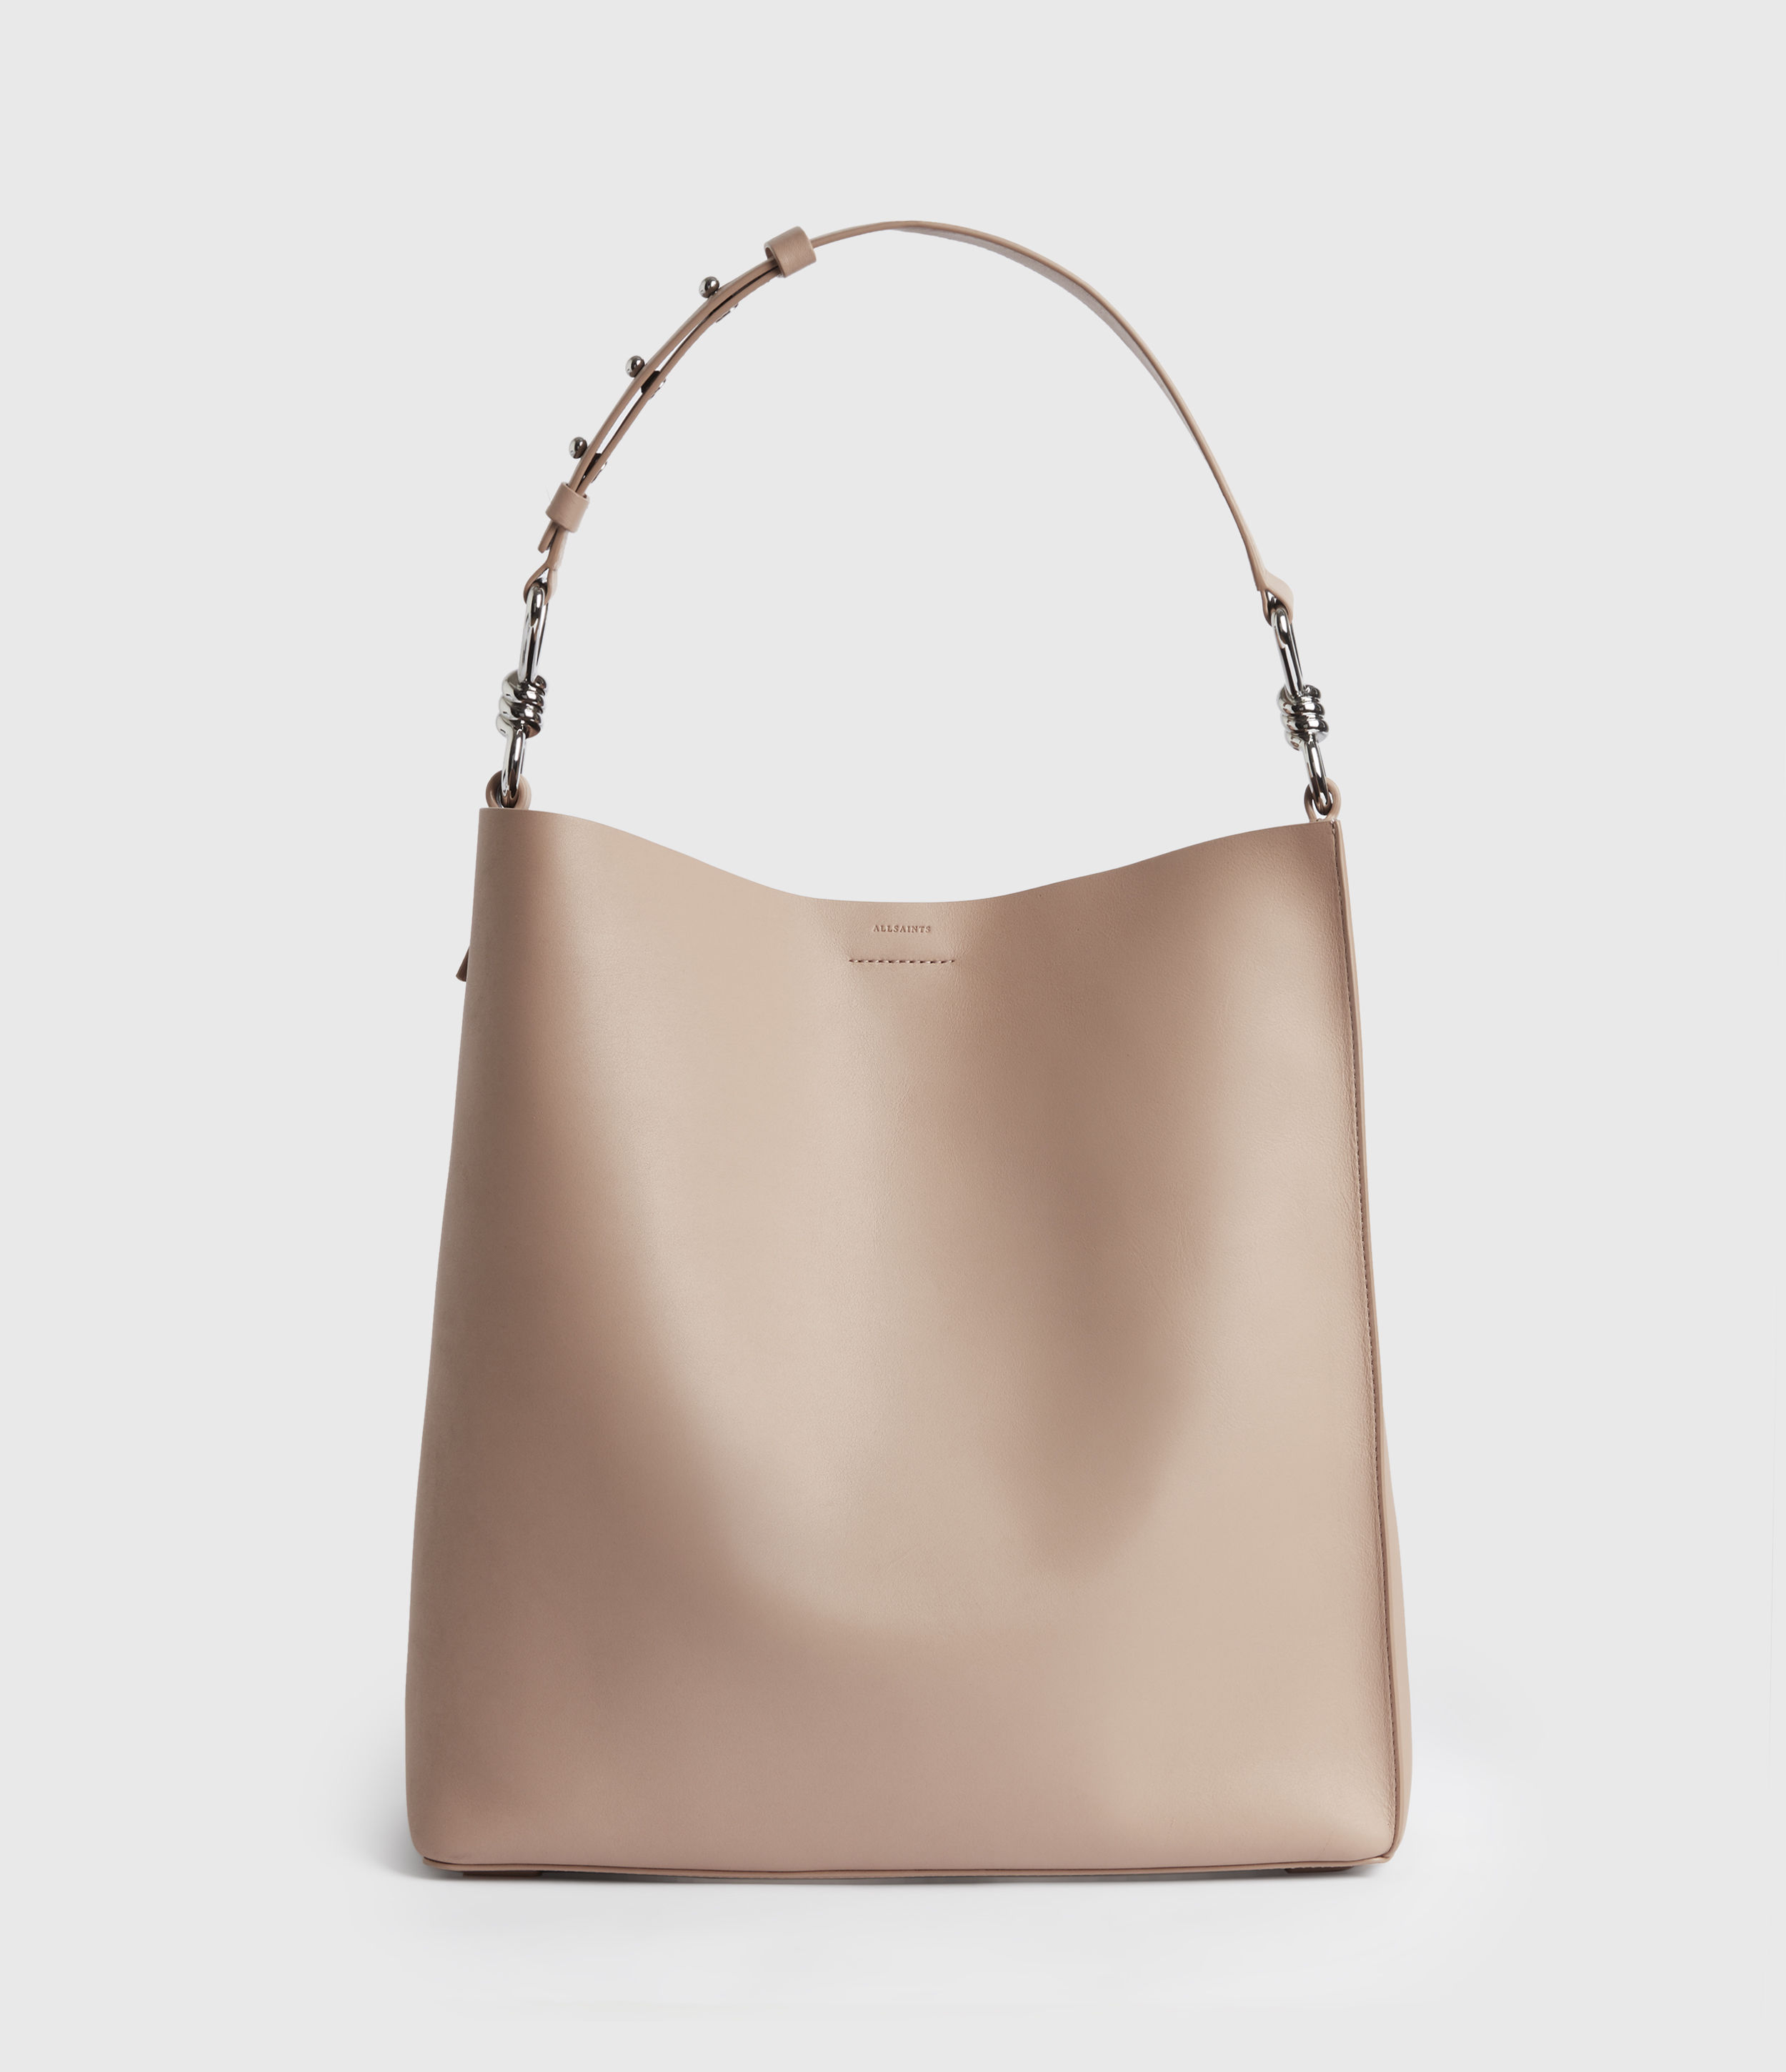 AllSaints Womens Captain Leather North South Tote Bag, Nude Pink